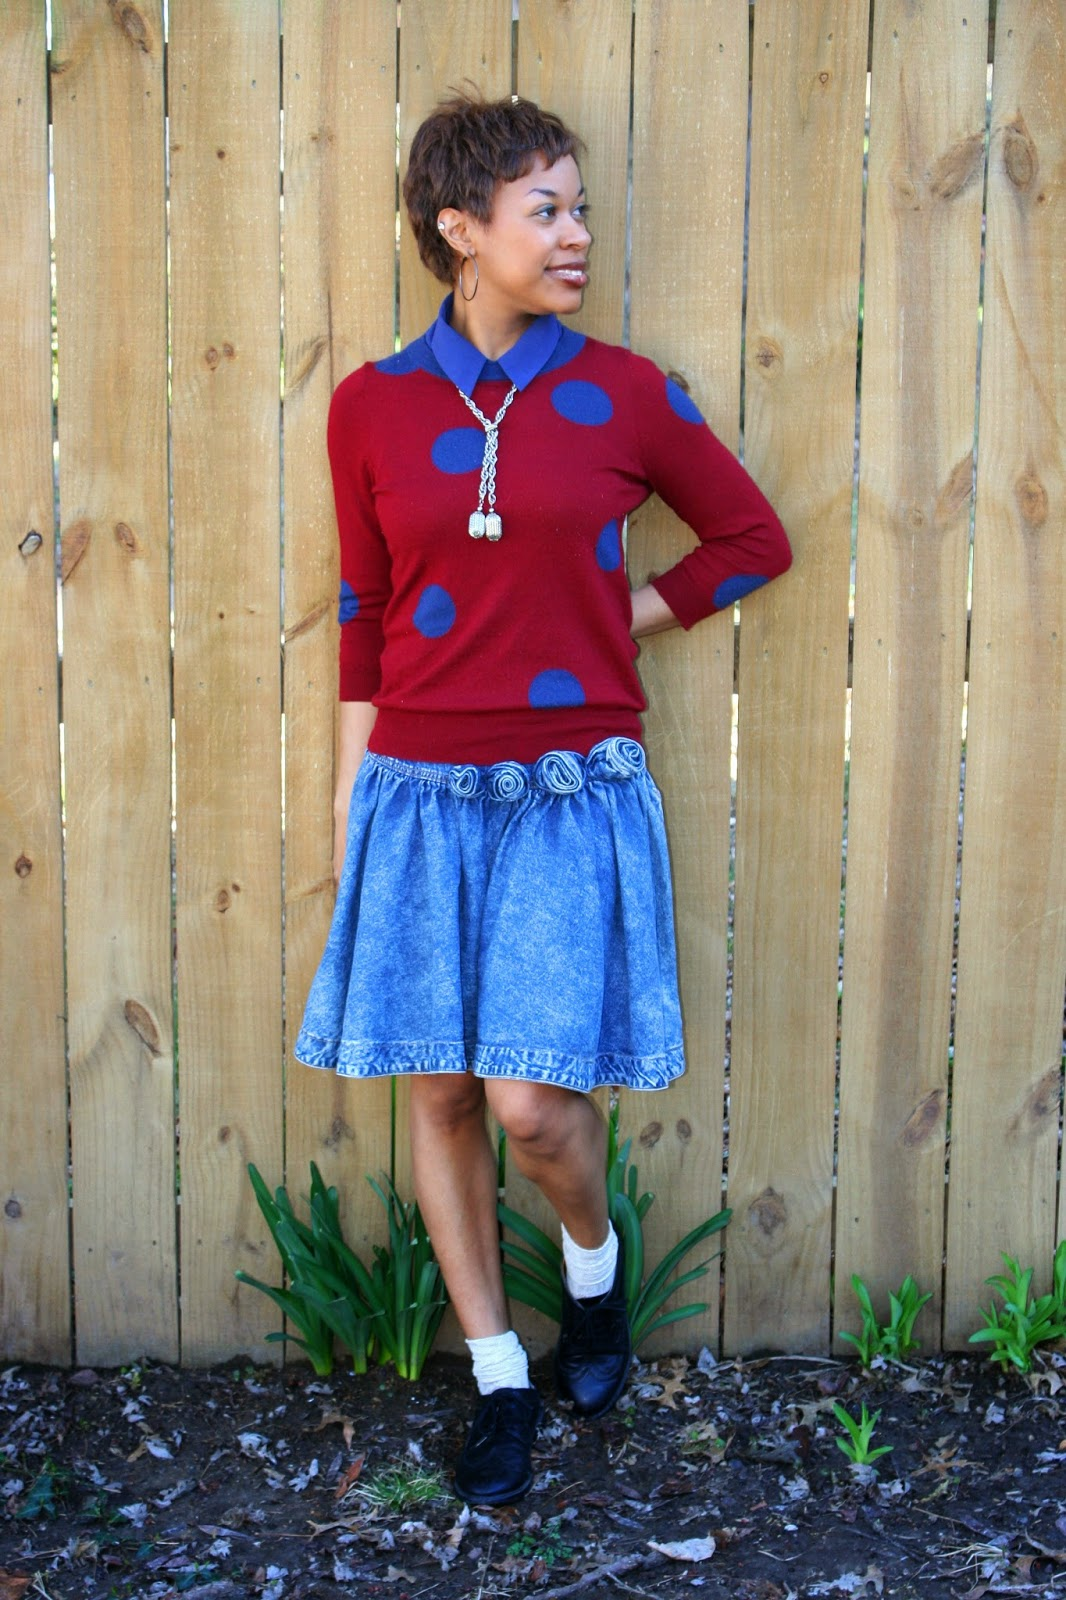 denim skirt with rosettes